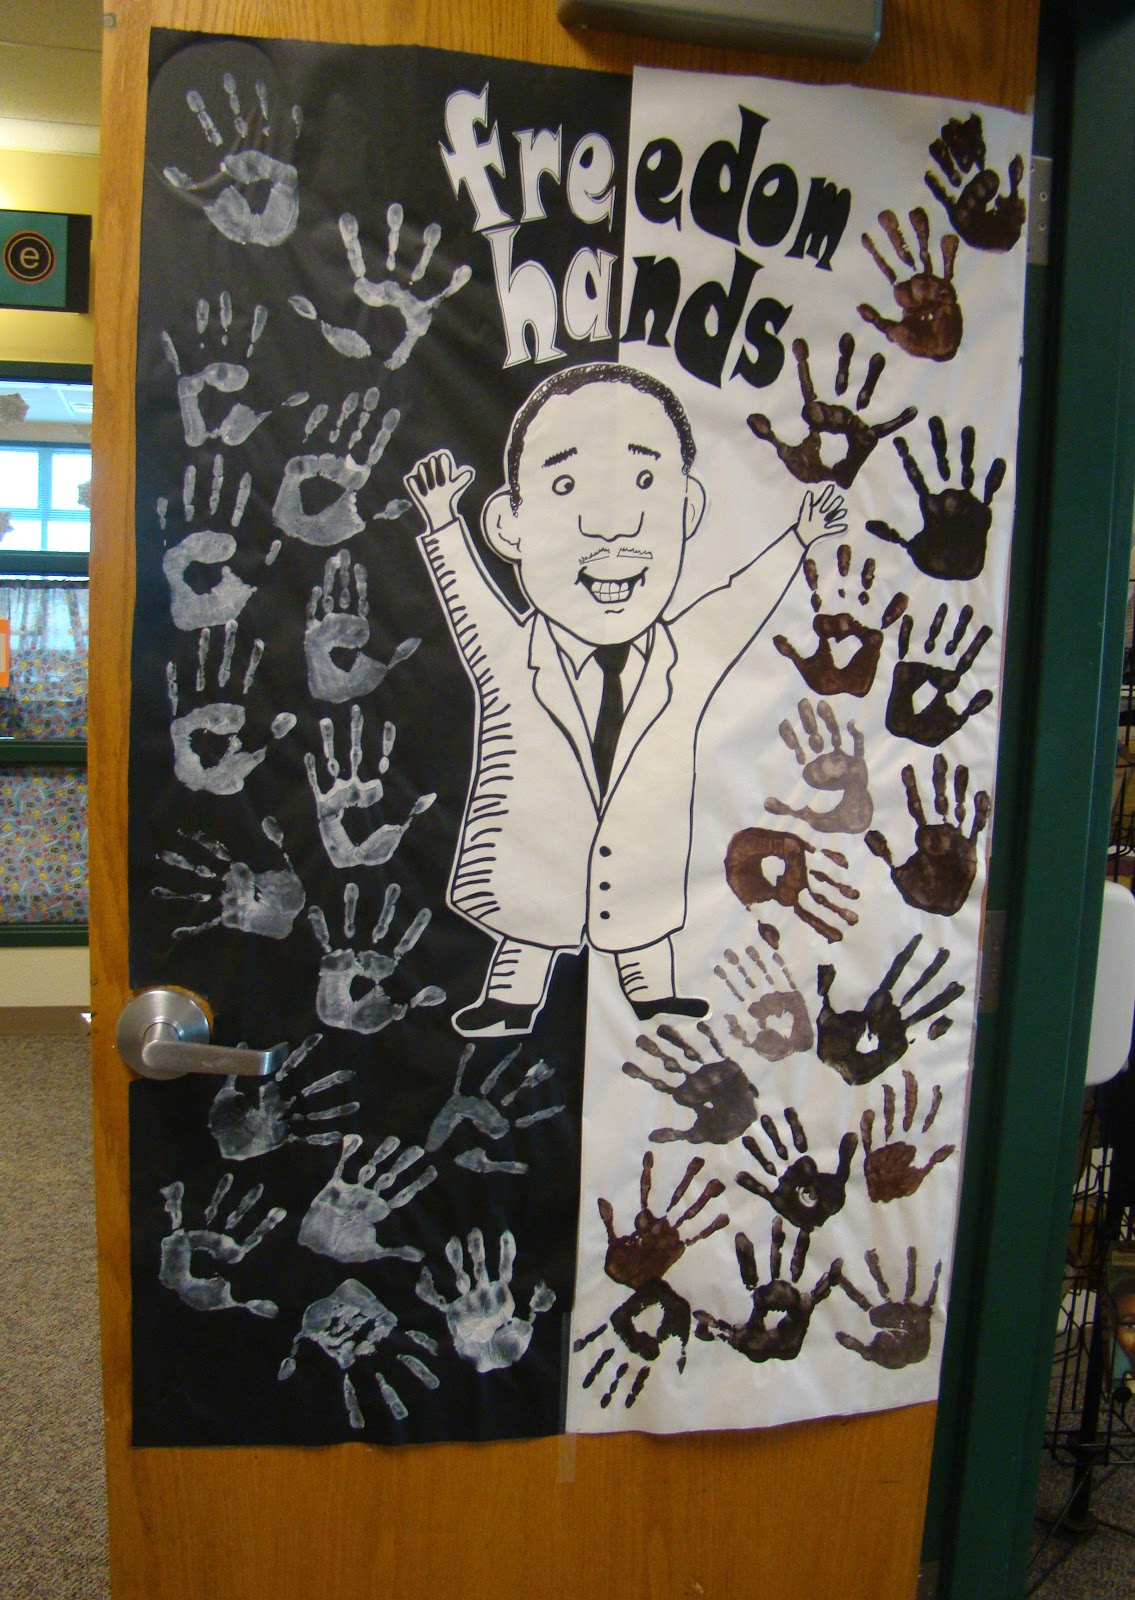 History Classroom Decoration Ideas ~ A full classroom freedom hands